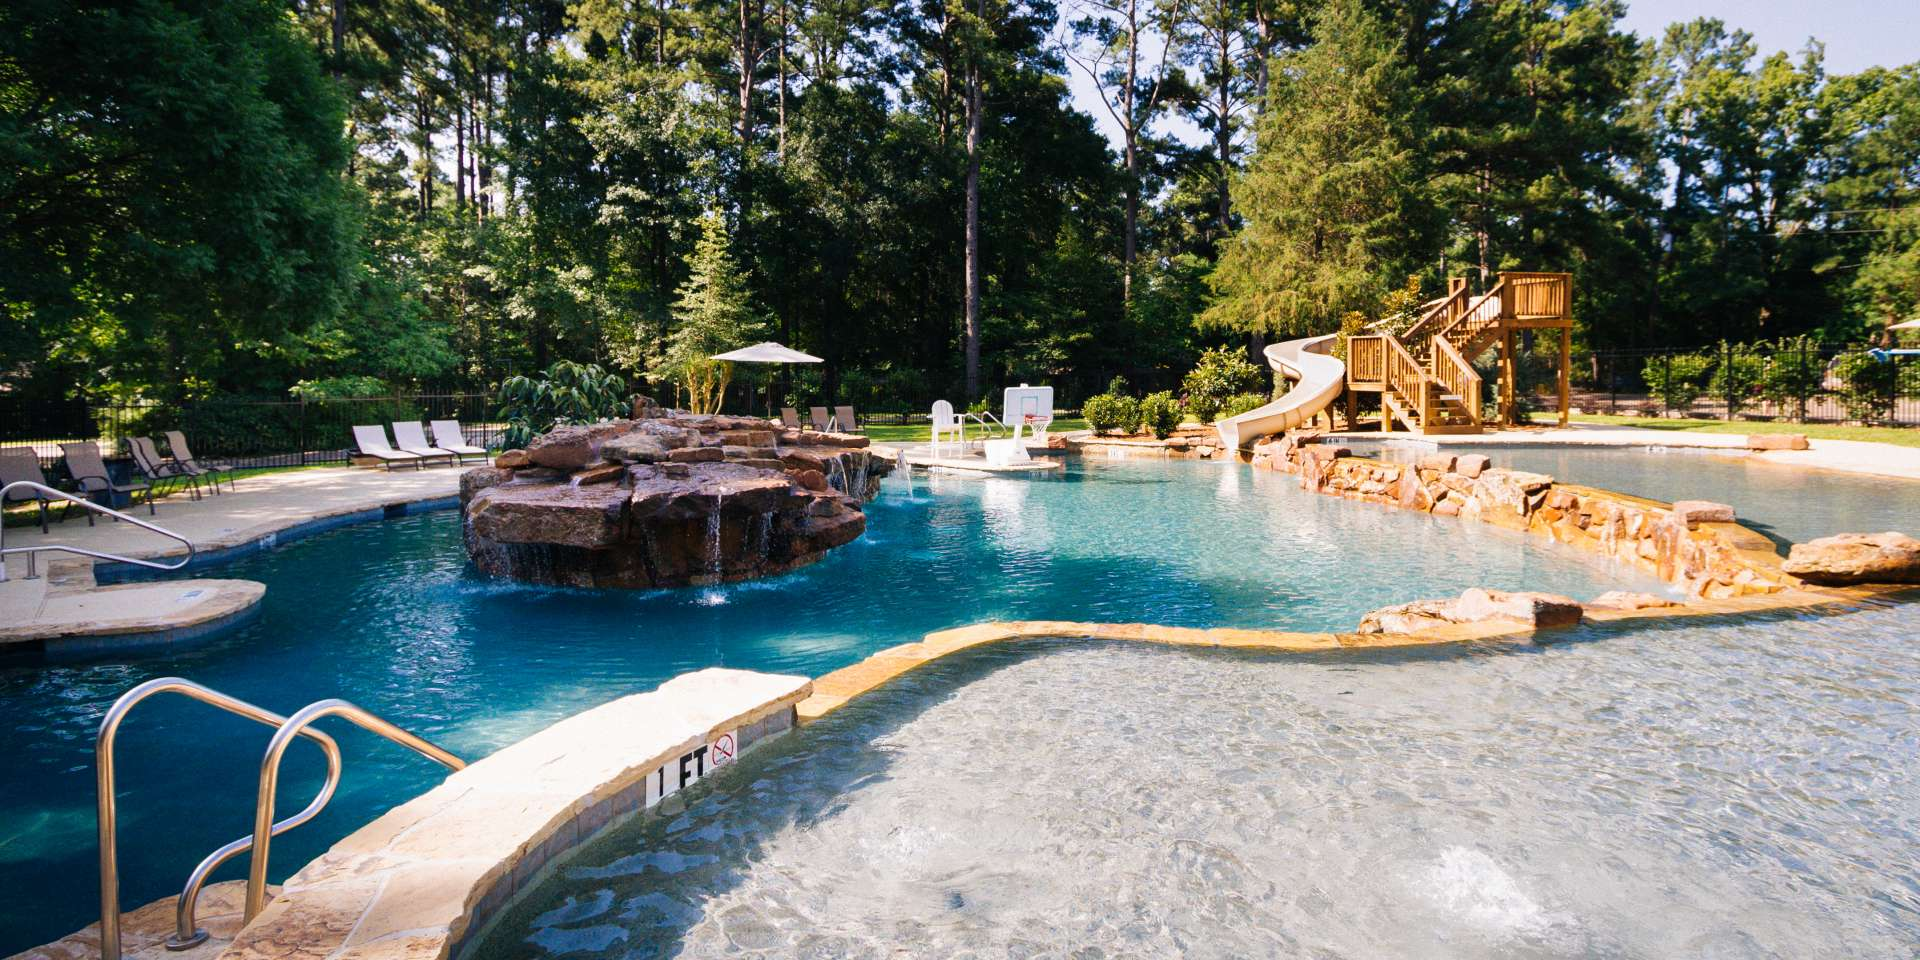 Woods_familycamp-woods-facilities-pool-wide